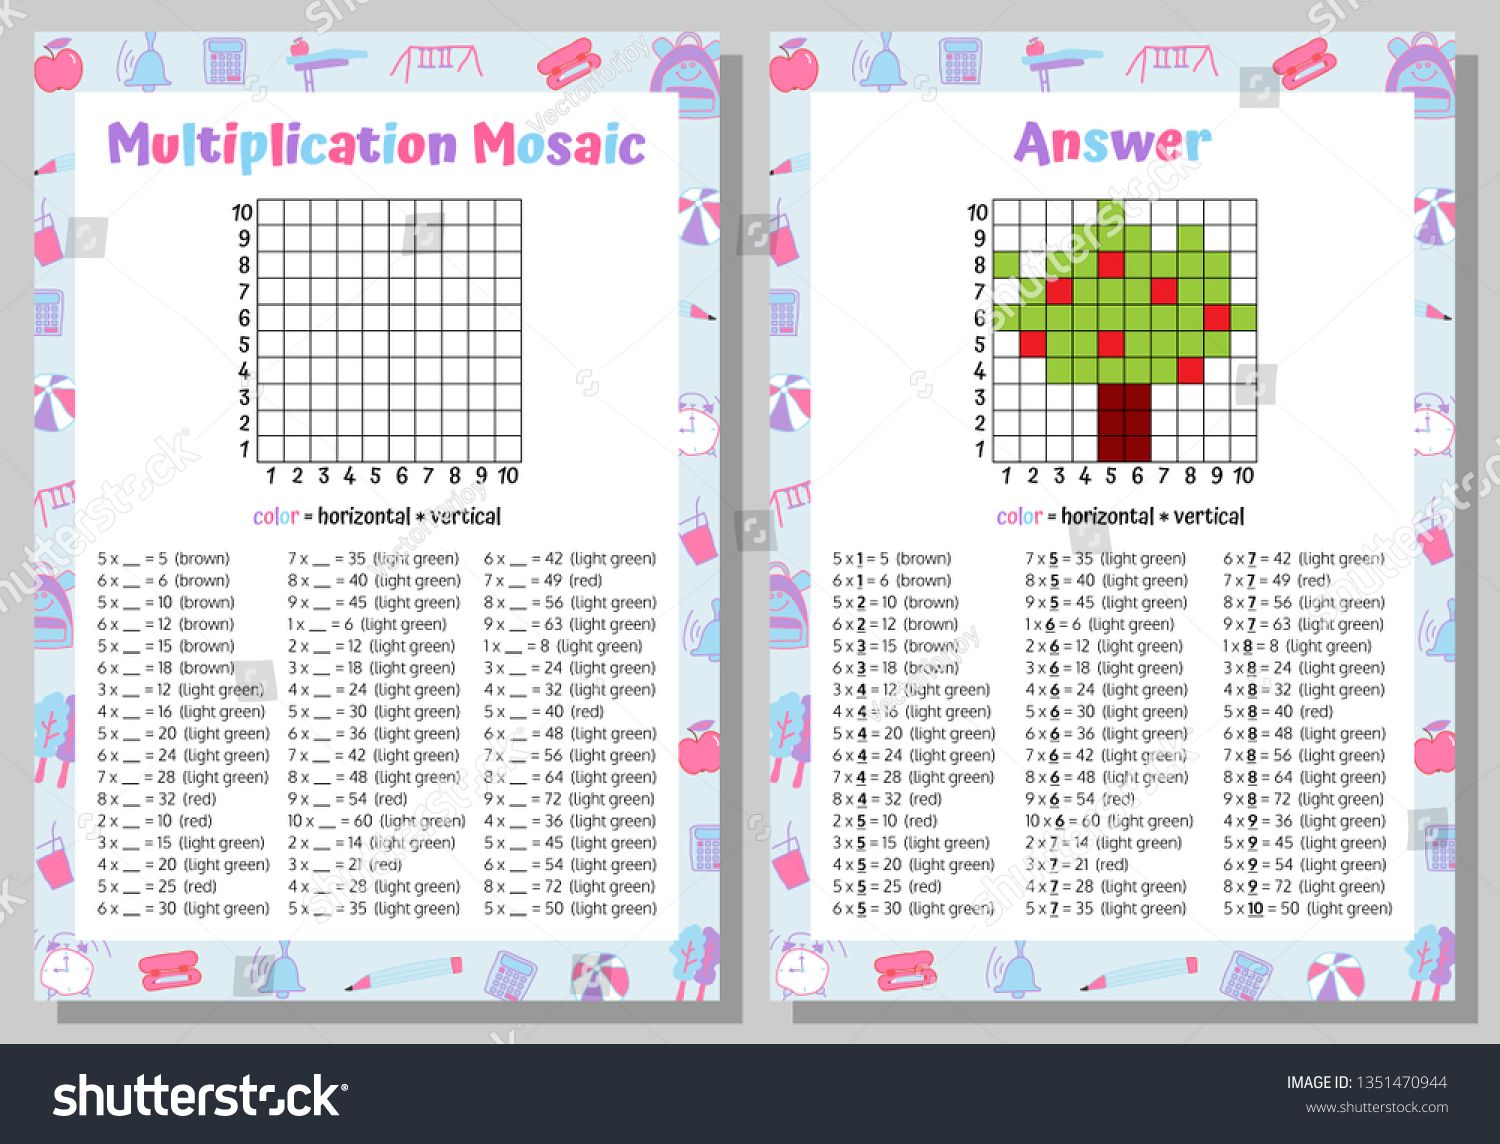 Multiplication Mosaic Math Puzzle Worksheet Educational Game Coloring Book Page Mathematical Game Pixel Art Vector Ill Maths Puzzles Math Mathematics Games [ 1144 x 1500 Pixel ]